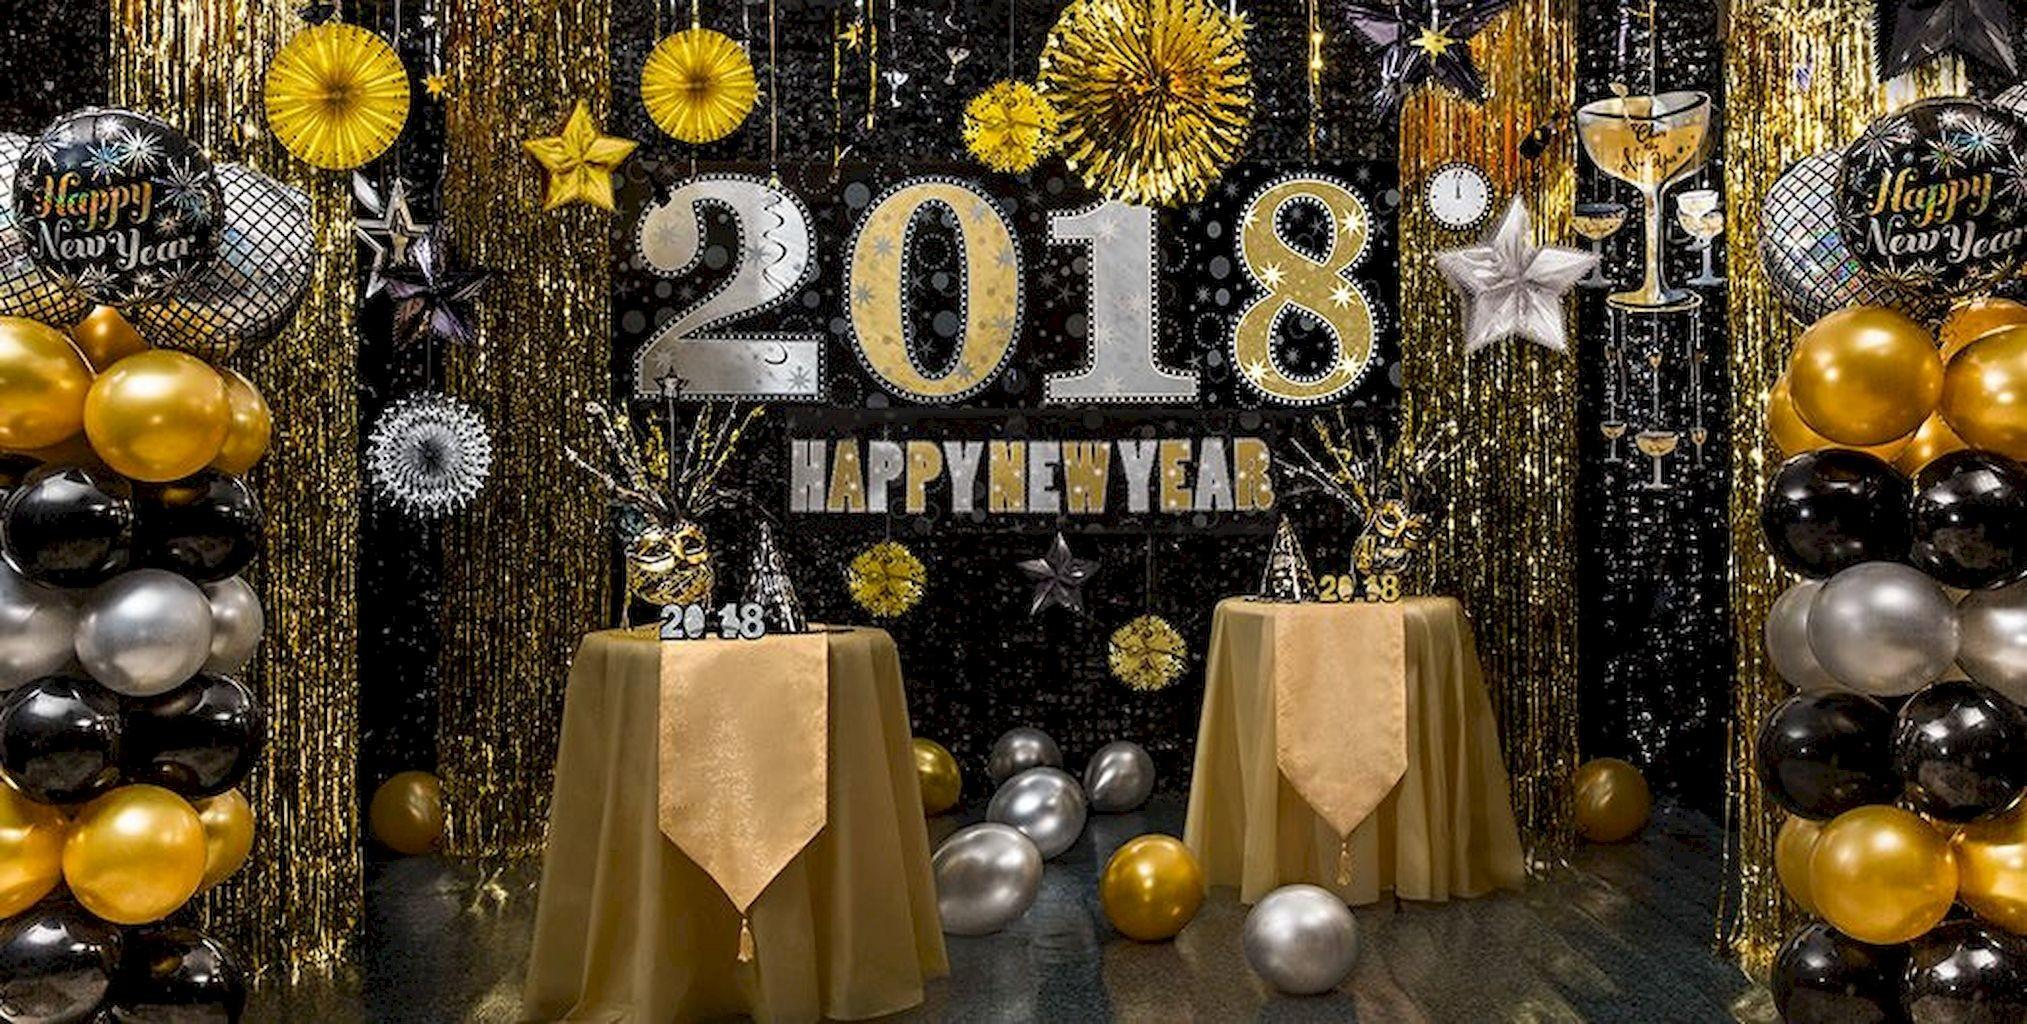 decoration ideas for new years eve party